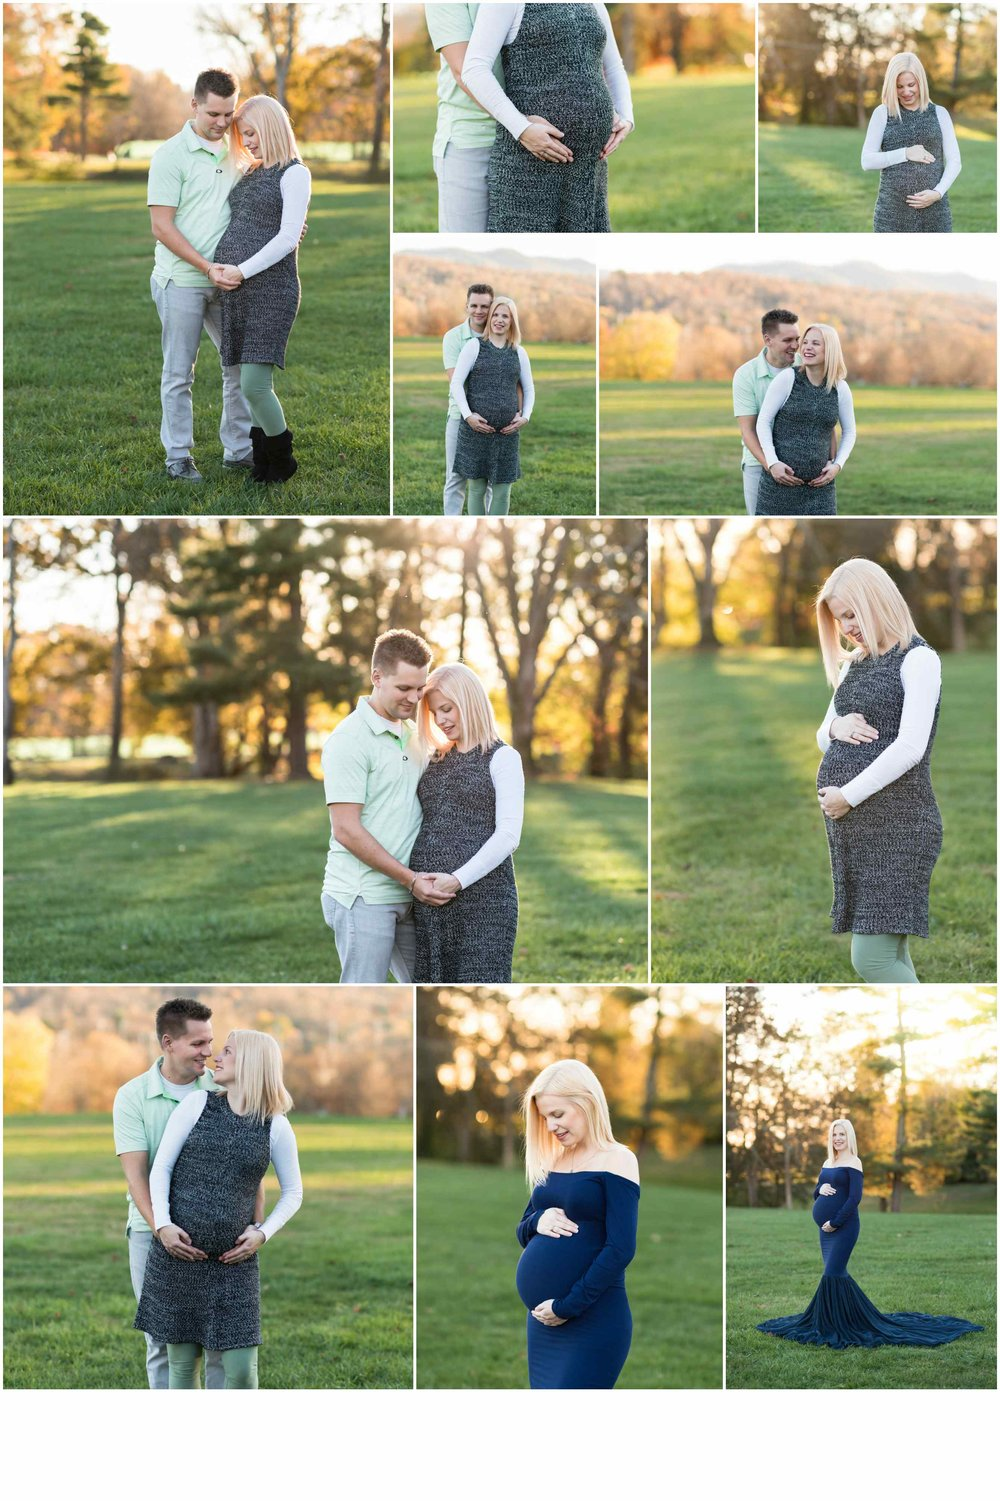 80883e2fd7eb3 Rosy Cheeks Photography specializes in newborn, baby, maternity, family,  and child photography